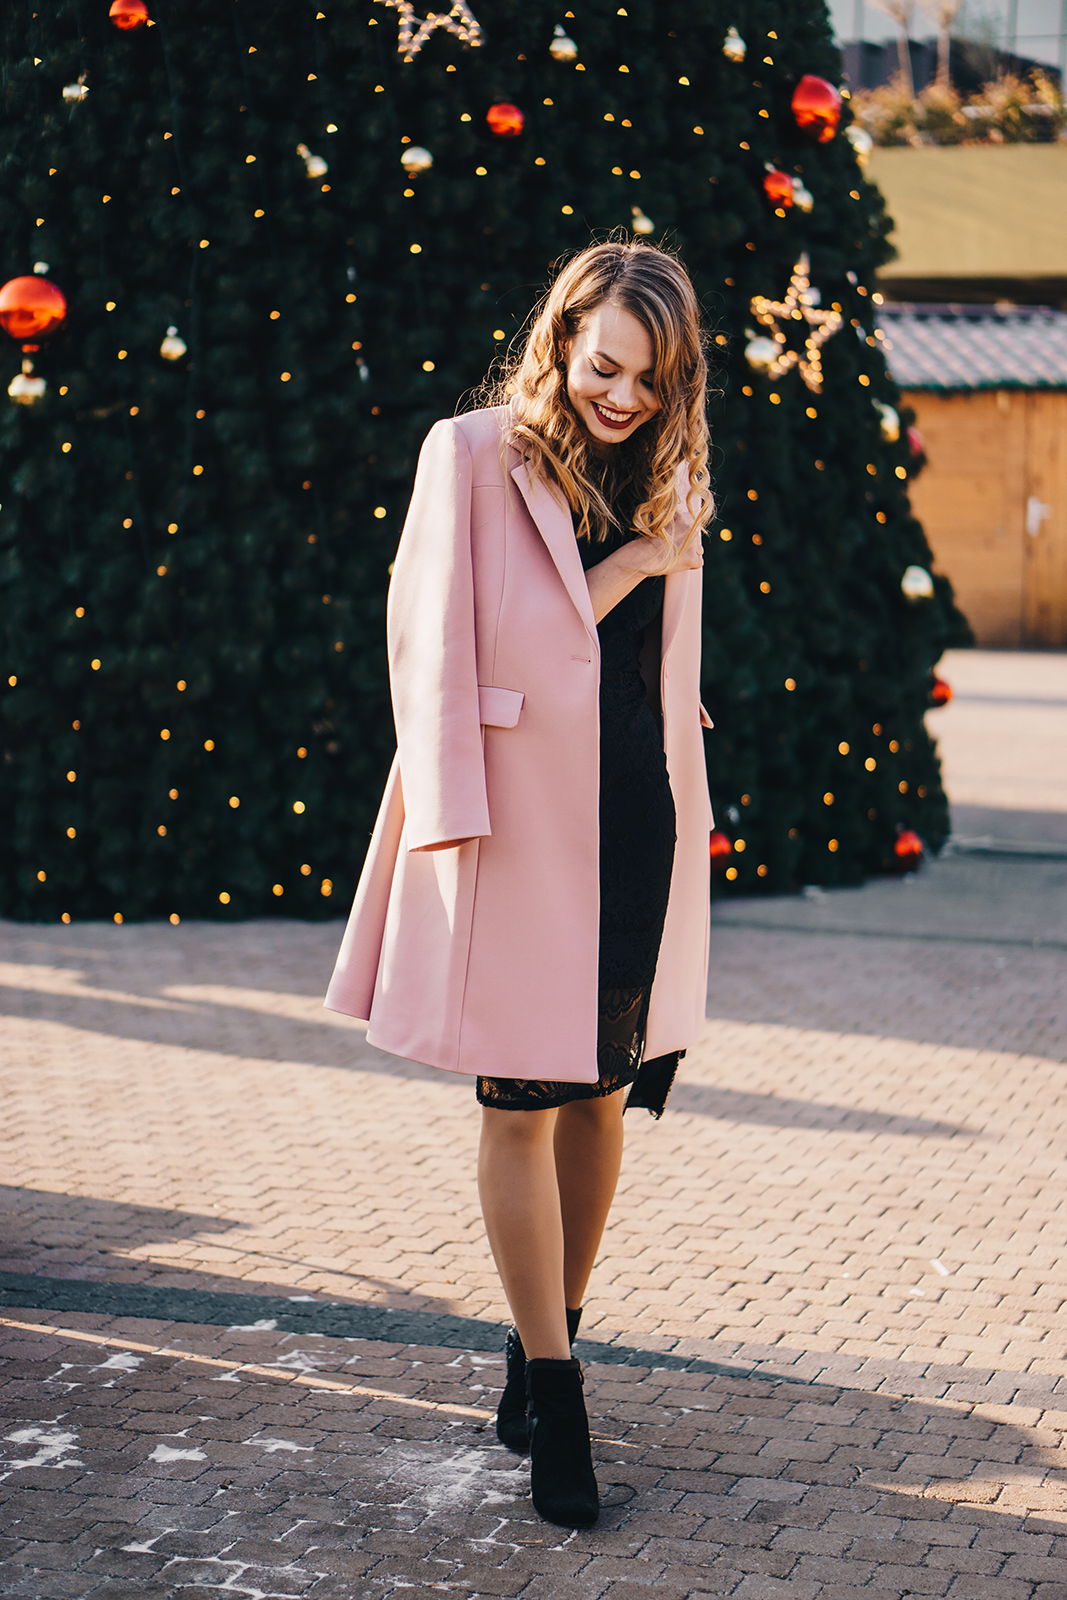 little-black-dress-pink-coat-christmas-outfit-pink-wish-1